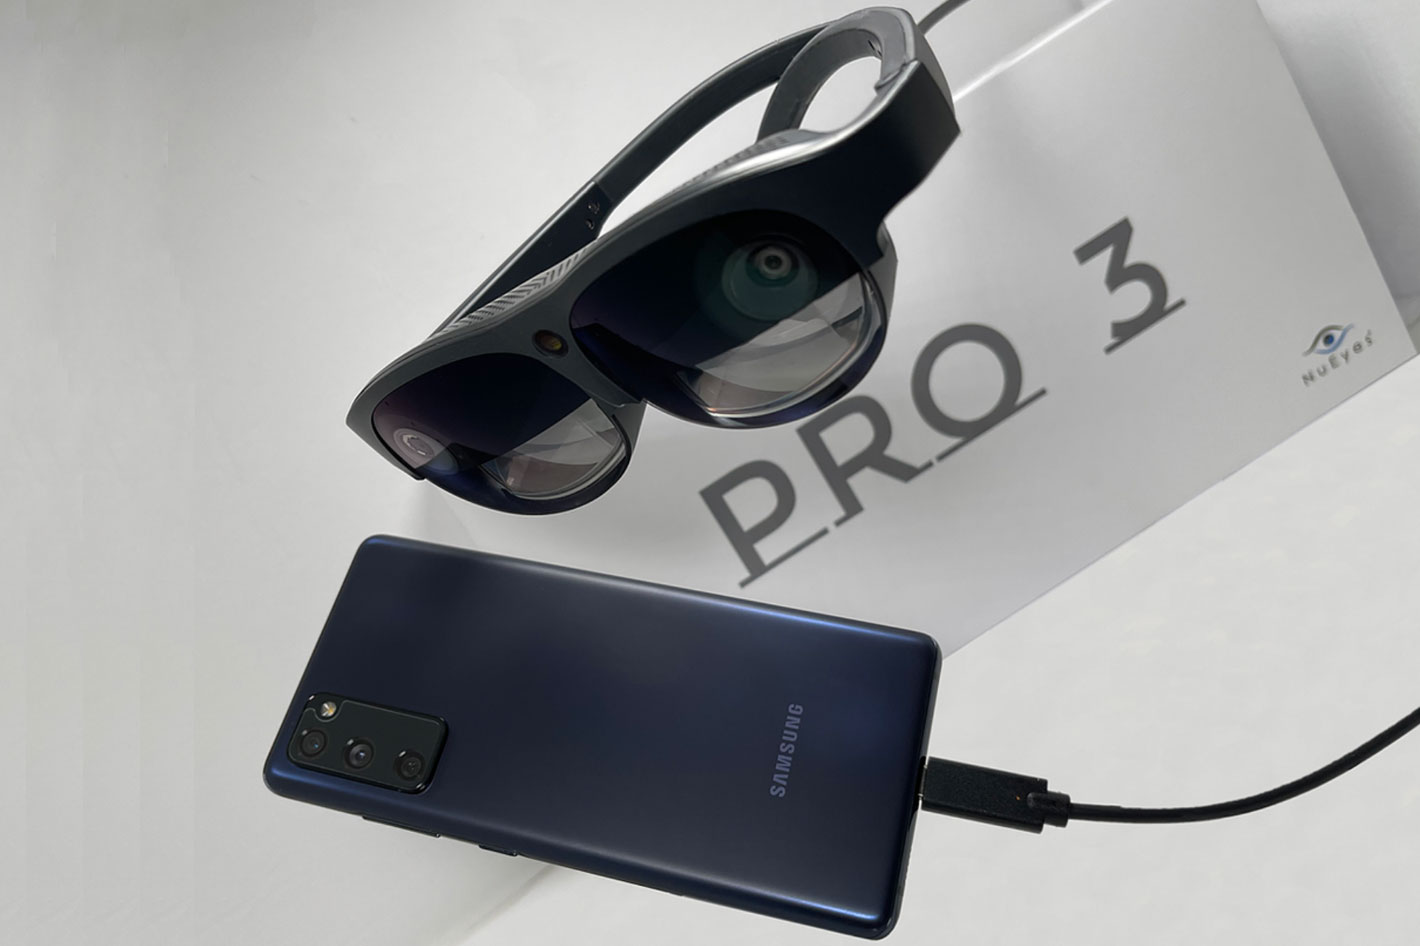 New Pro 3e smart glasses from NuEyes target entertainment